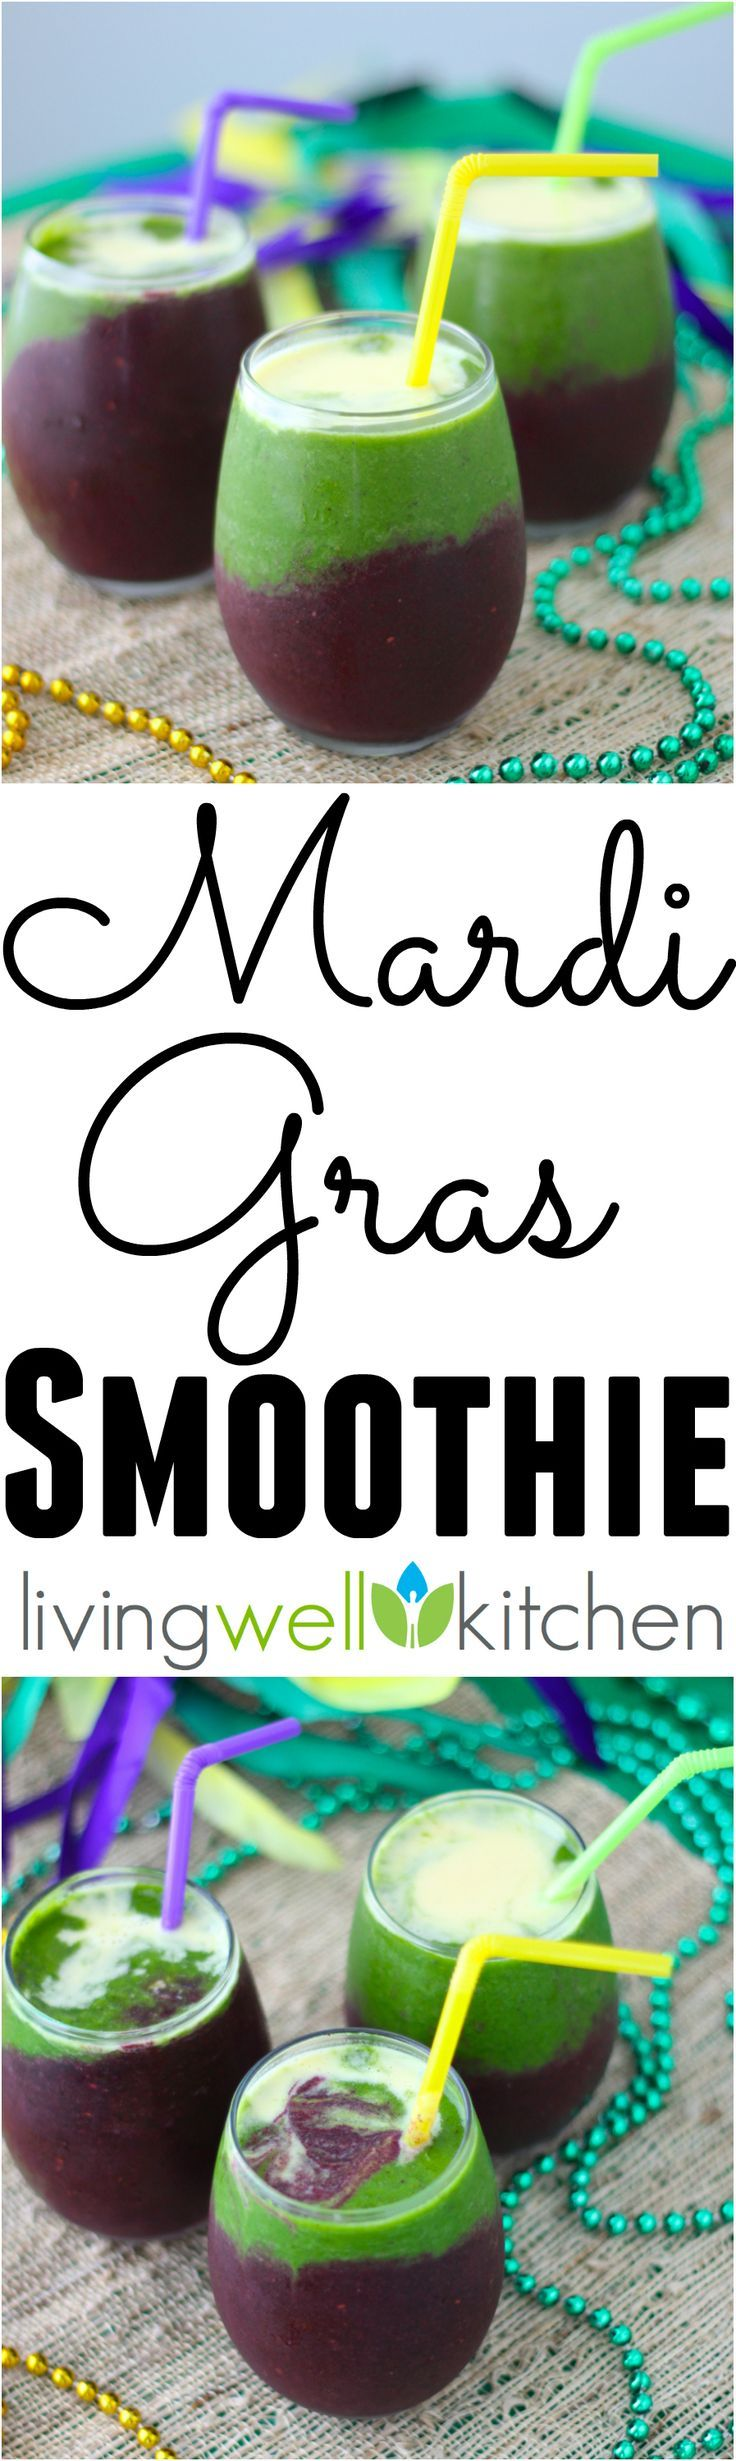 Festive, boozy Mardi Gras Smoothie recipe from @memeinge is a tasty on-the-go option for getting in your fruits & veggies while watching the parades roll by. Great idea for adults and kids (alcohol free option included) to celebrate the Mardi Gras season